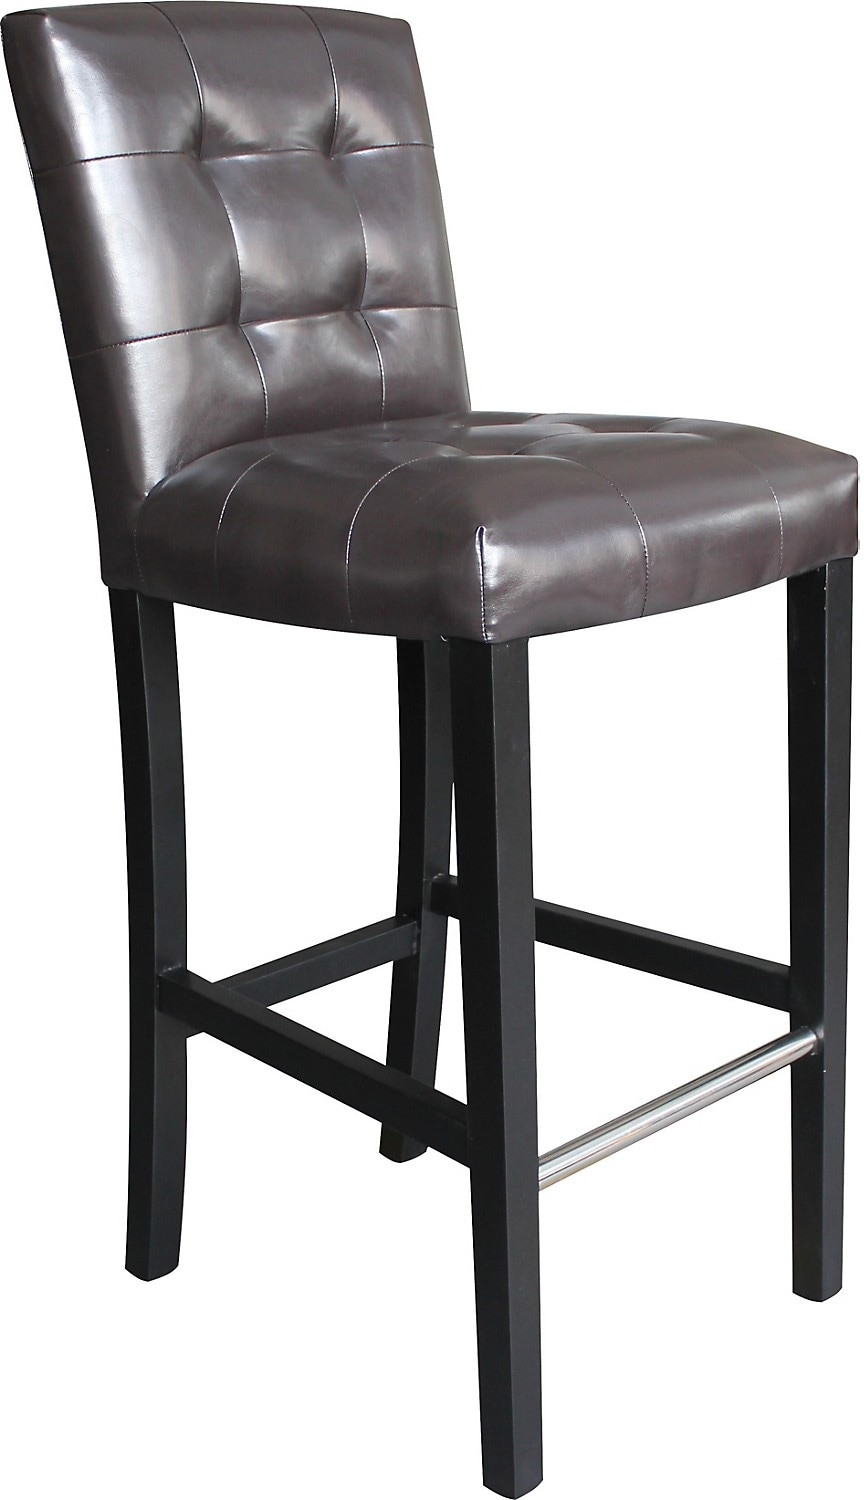 Cosmo Bar Stool - Brown